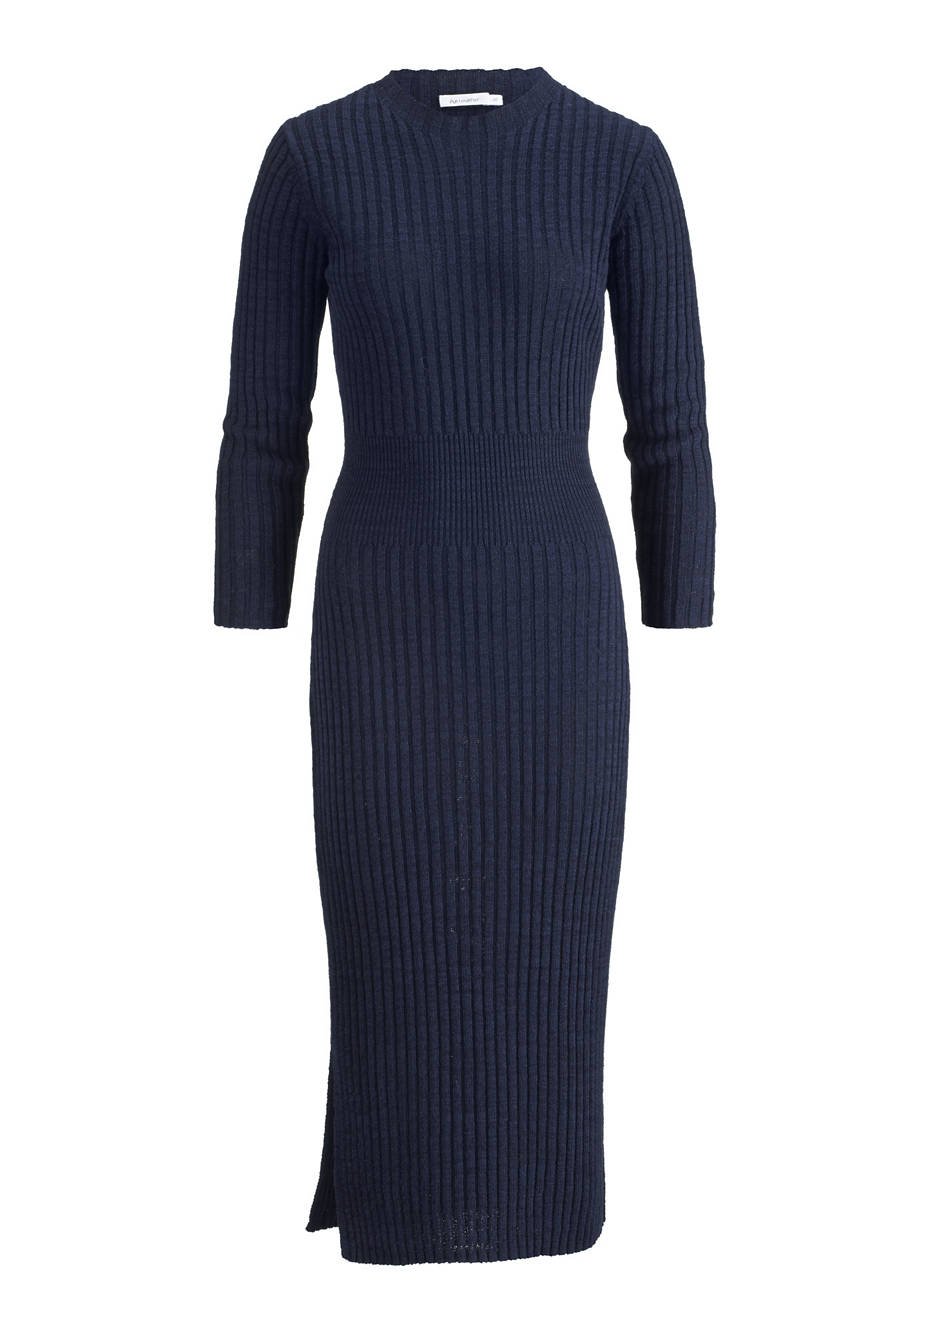 Knit dress made of linen and organic cotton